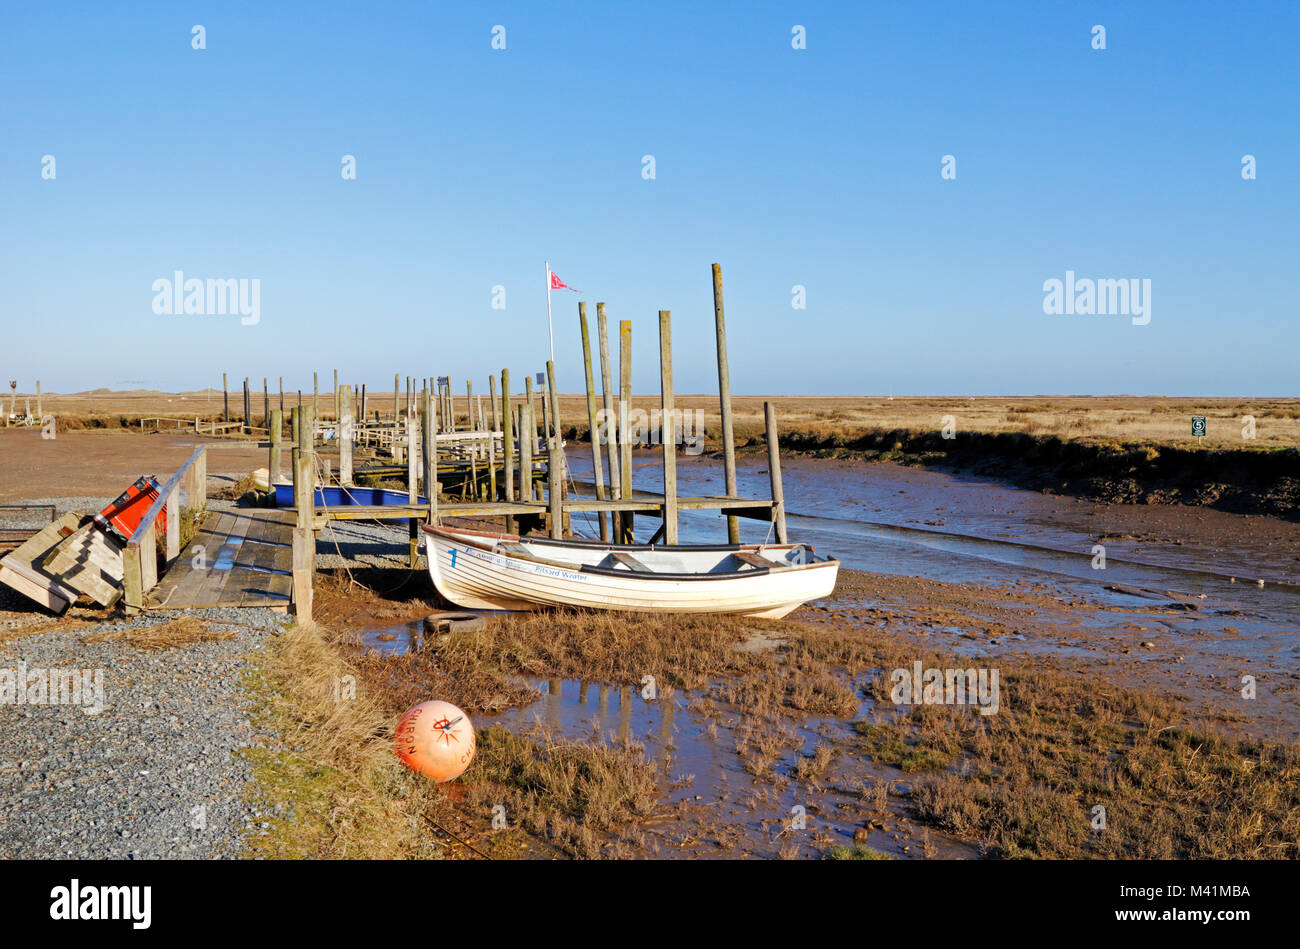 A view of quay heading and small boat in a North Norfolk creek at Morston, Norfolk, England, United Kingdom, Europe. - Stock Image